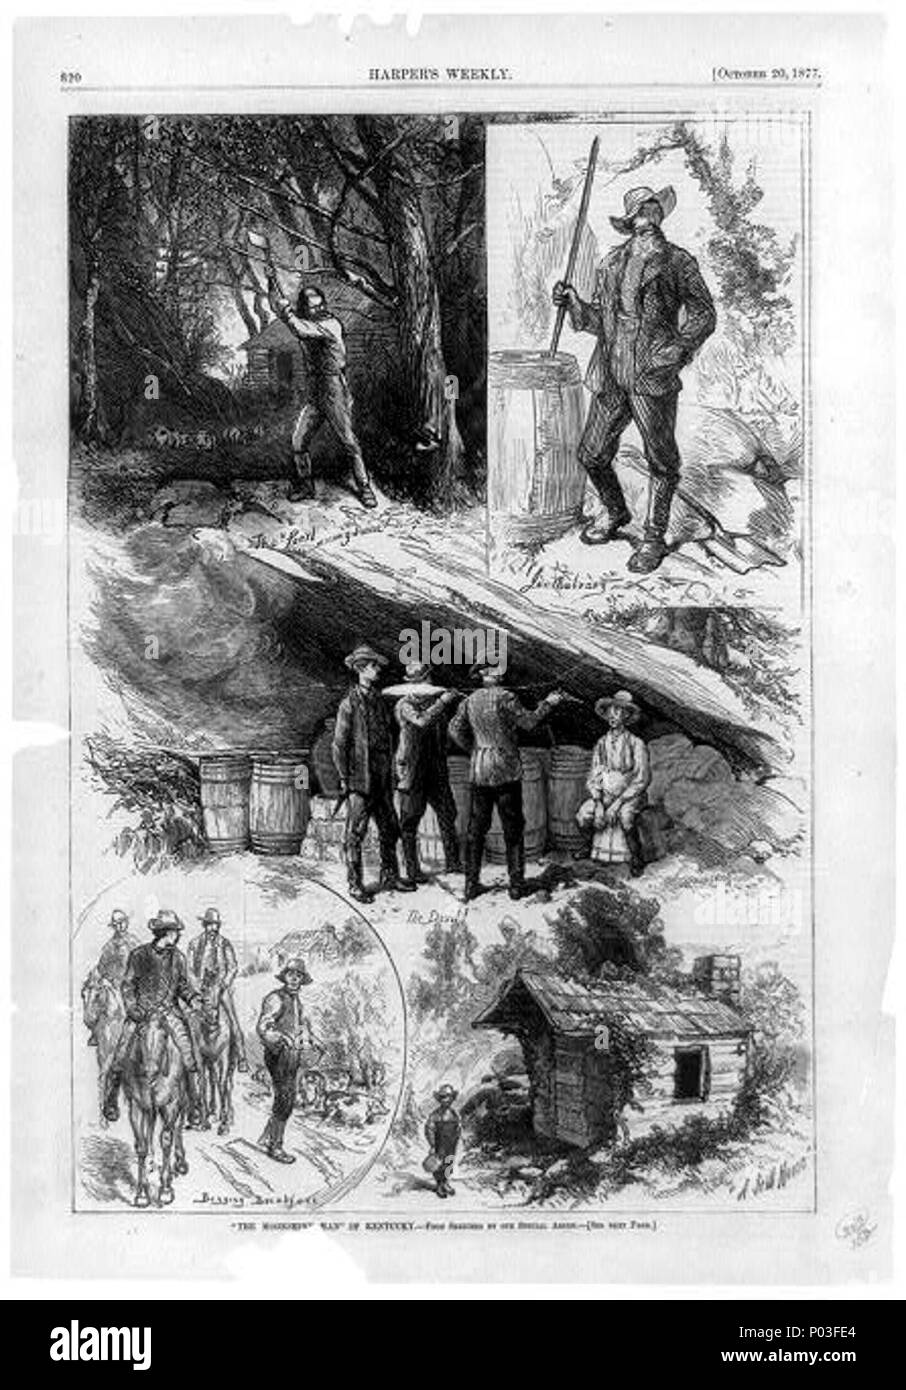 The moonshine man of Kentucky (Composite of 5 scenes of moonshining showing man cutting down tree, man mixing ingredients, moonshiner held captive by 3 men, 3 men on horseback begging for L 0019 - Stock Image